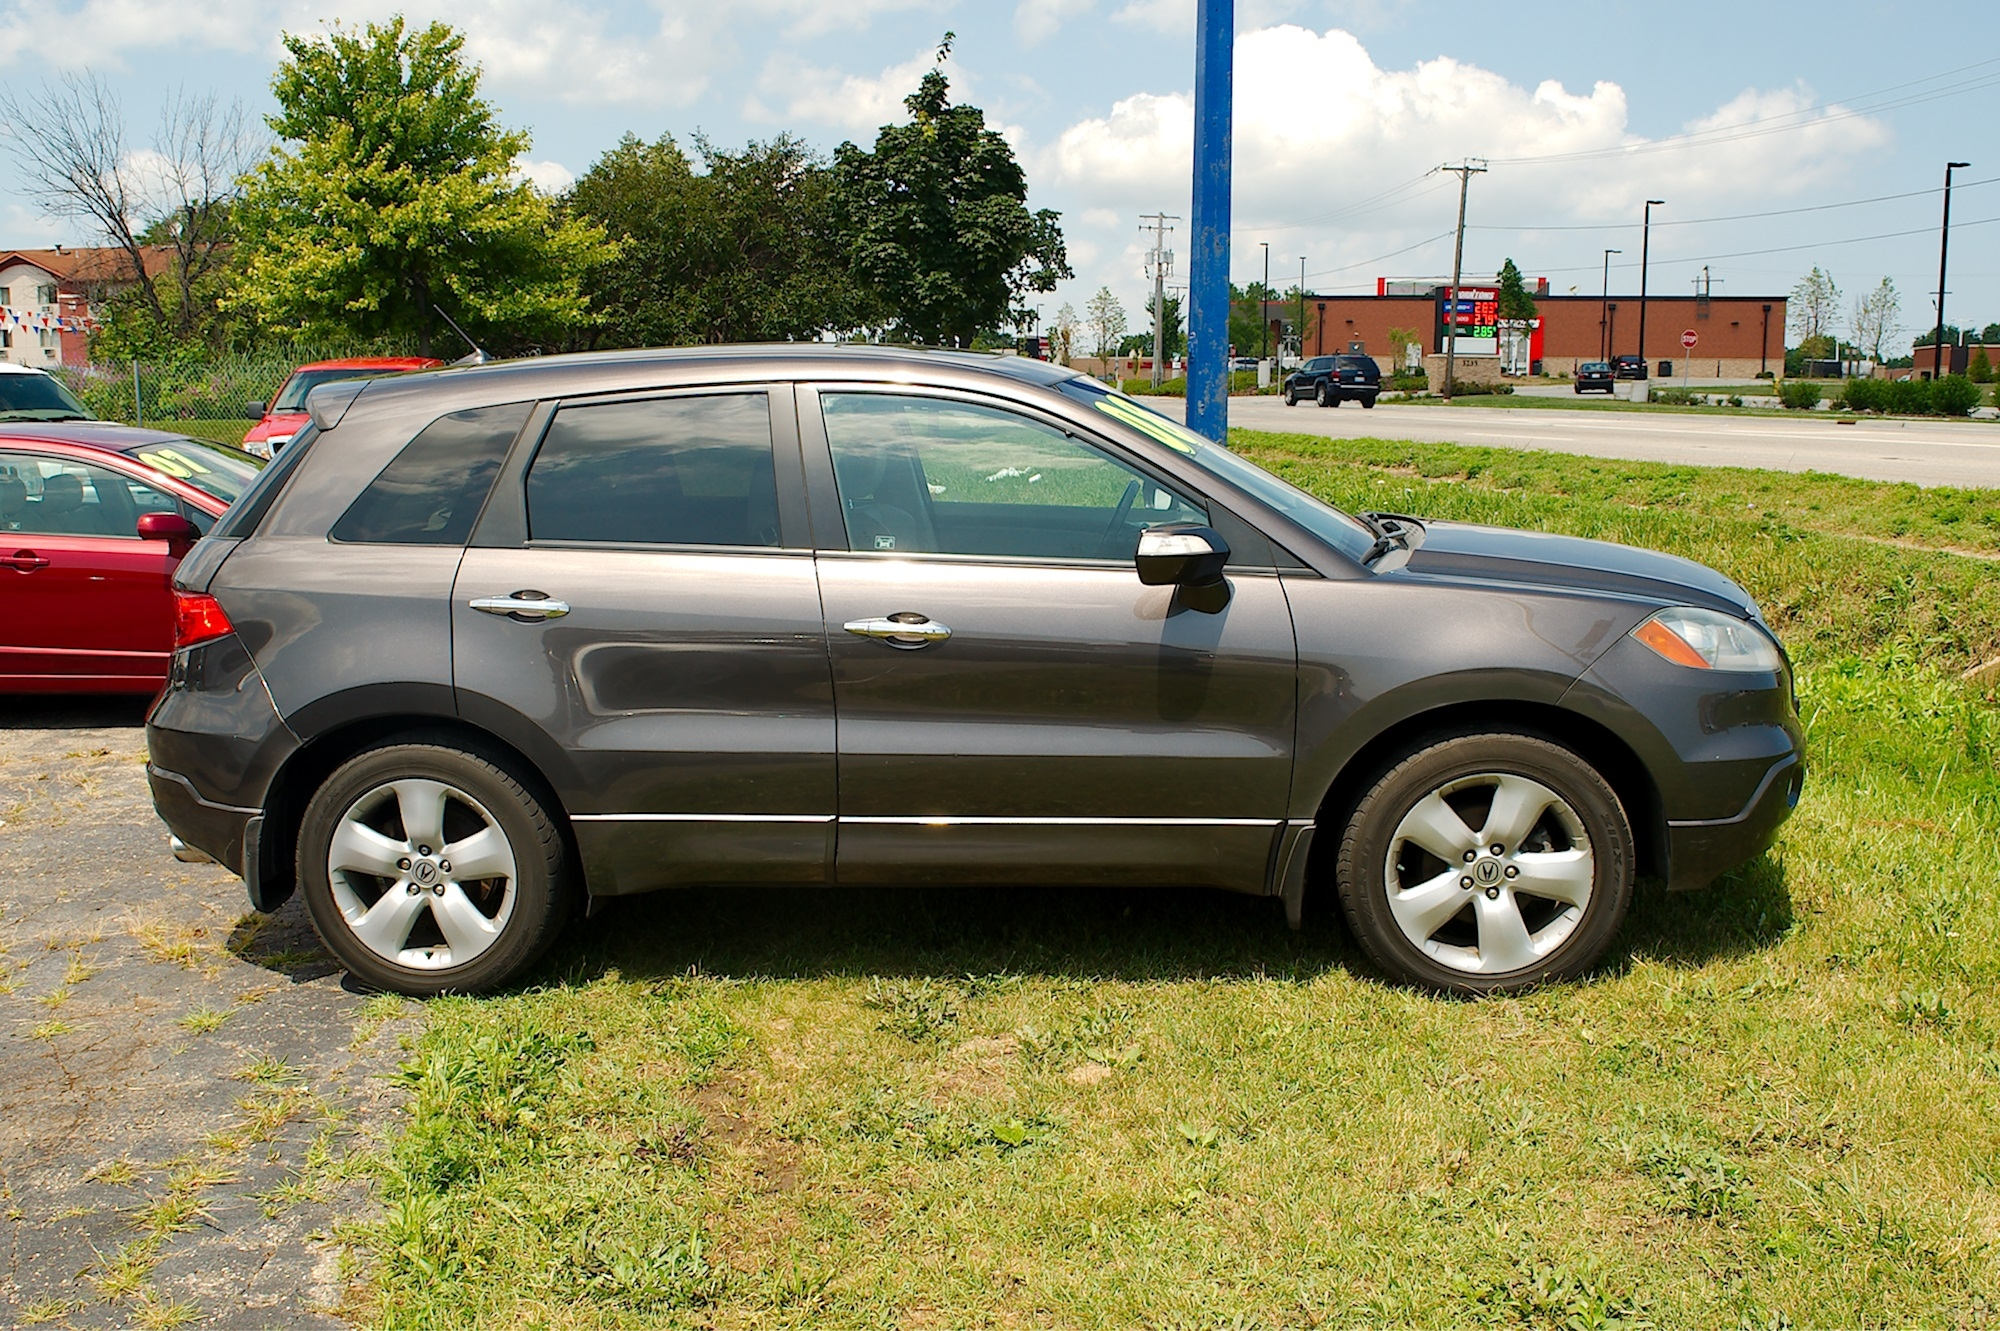 2005 Acura RDX Turbo Gray SUV Sale Bannockburn Barrington Beach Park